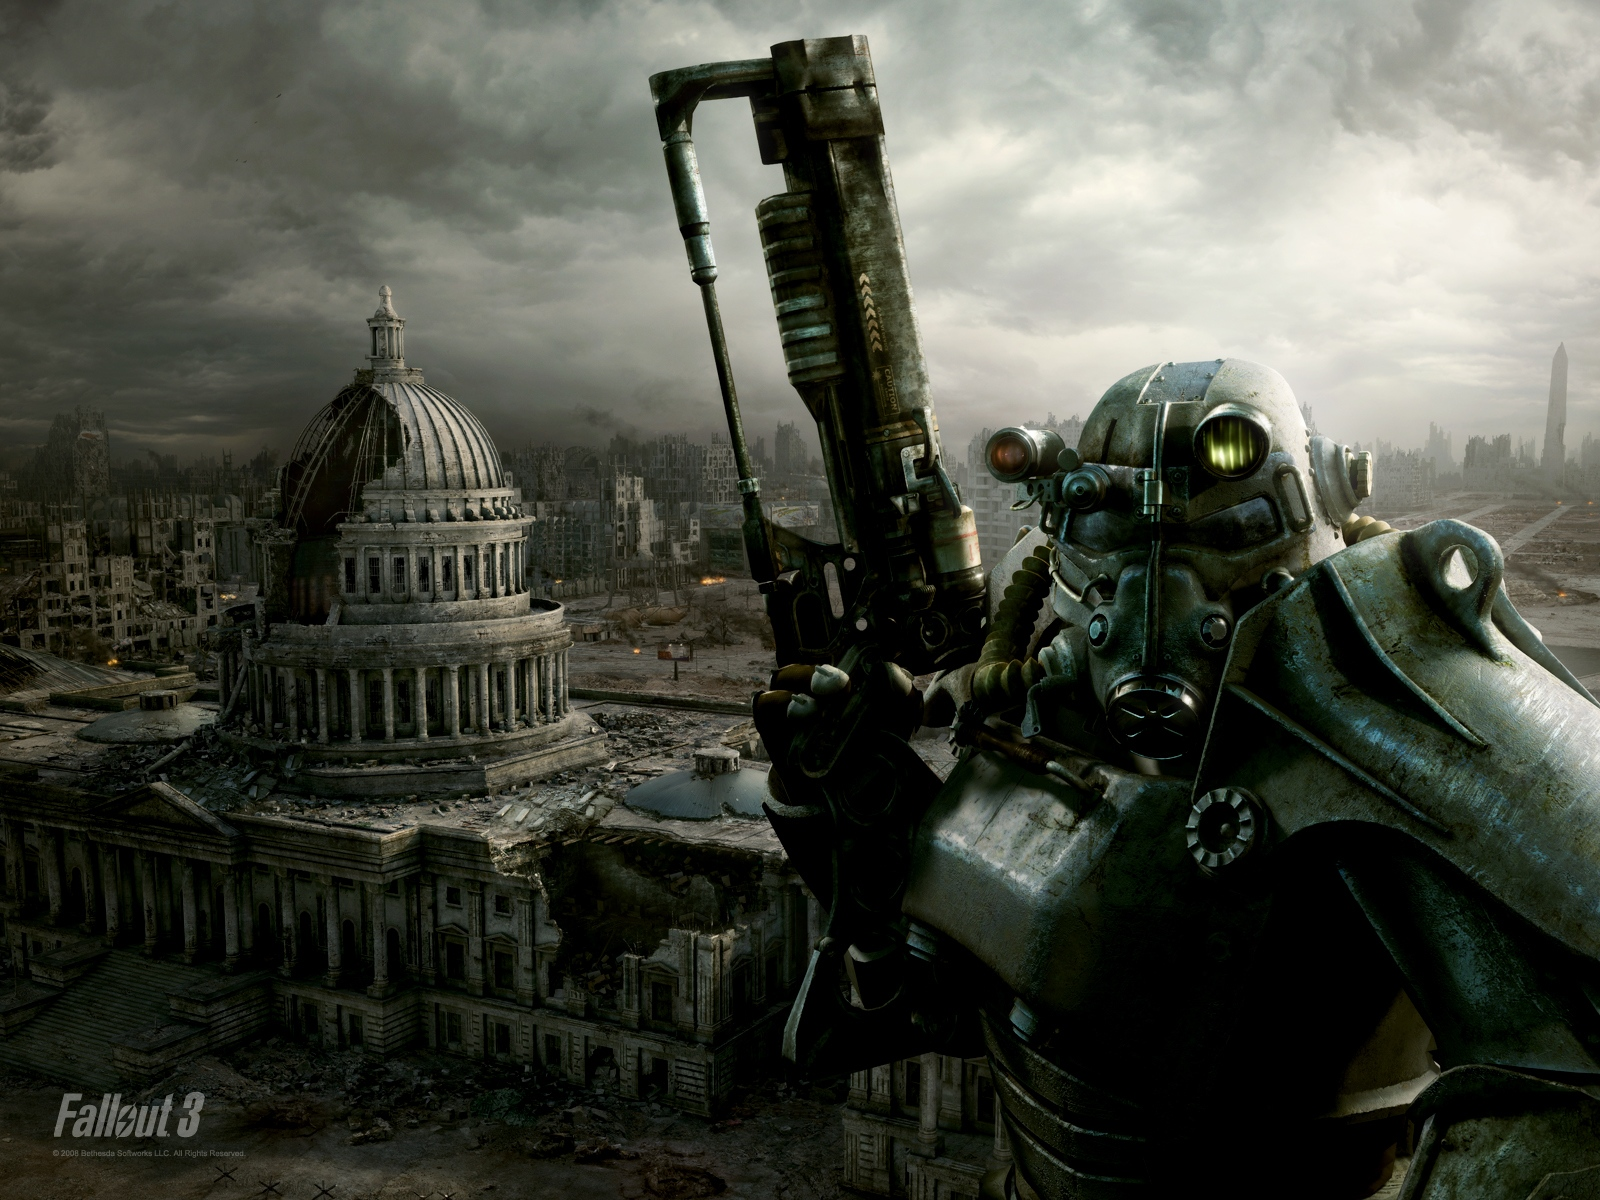 Fallout 3 Brotherhood of Steel HD Wallpapers DVD CoverImage to 1600x1200